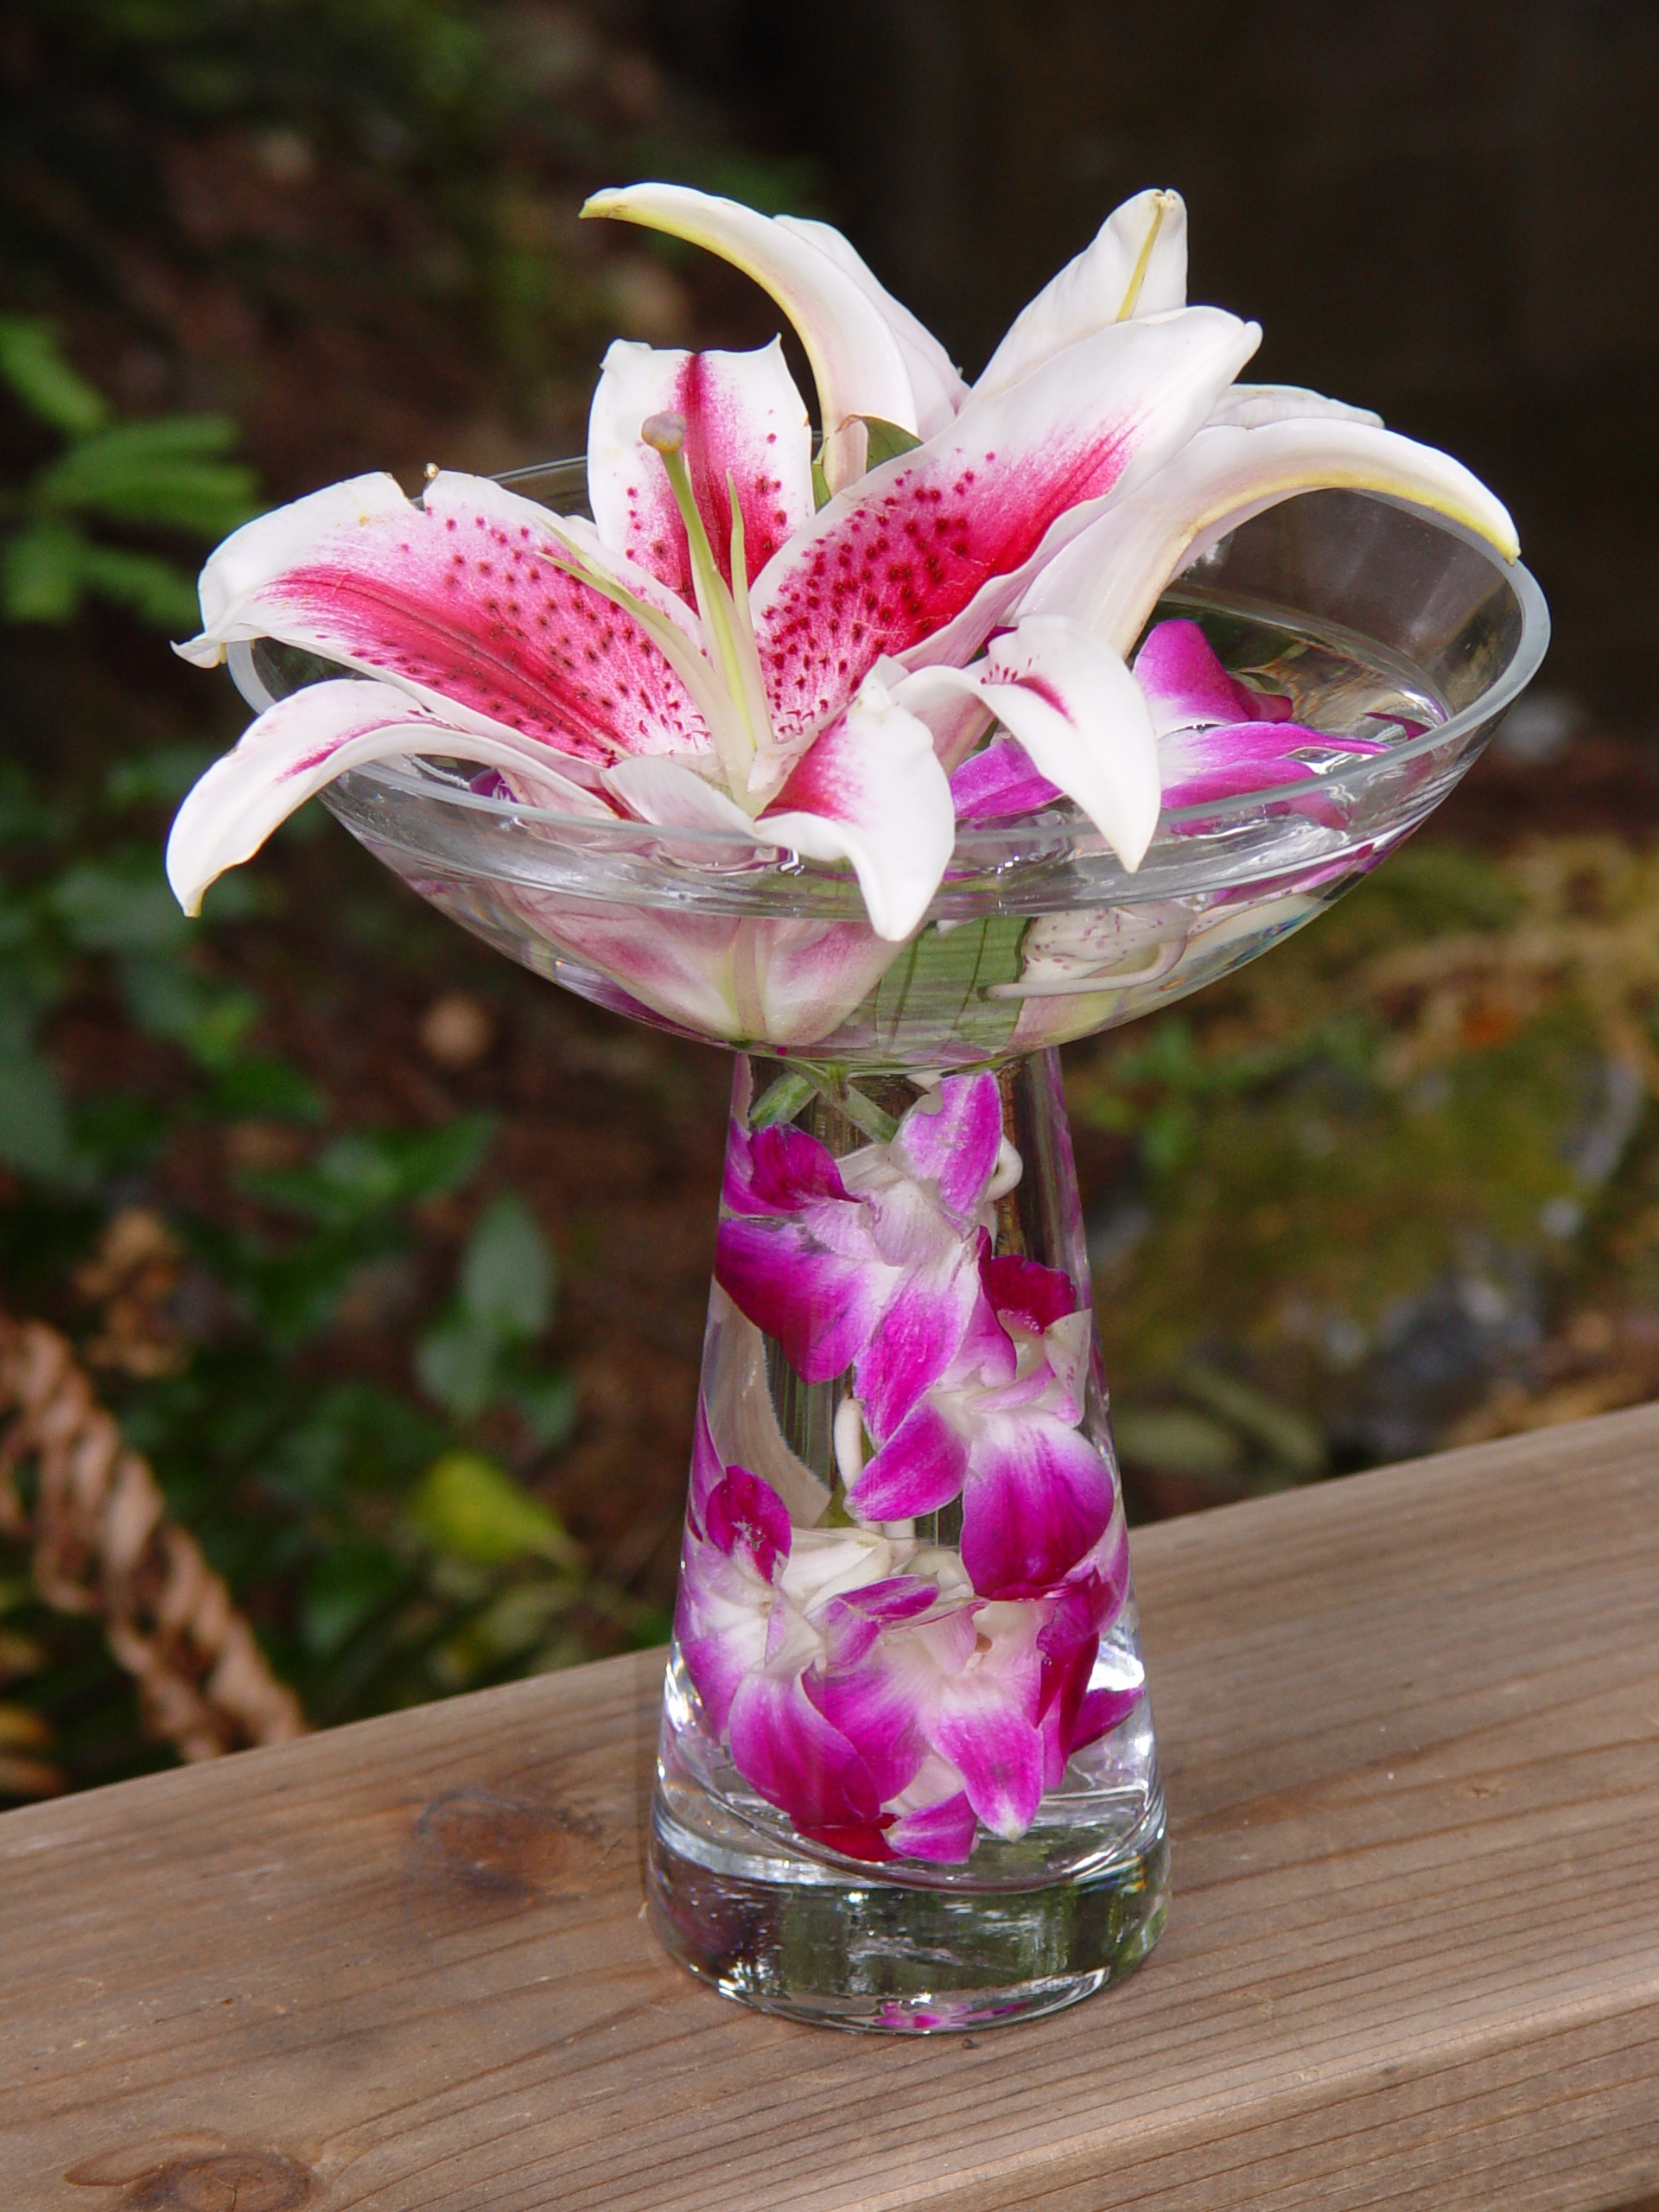 A unique glass vase filled with submerged dendrobium